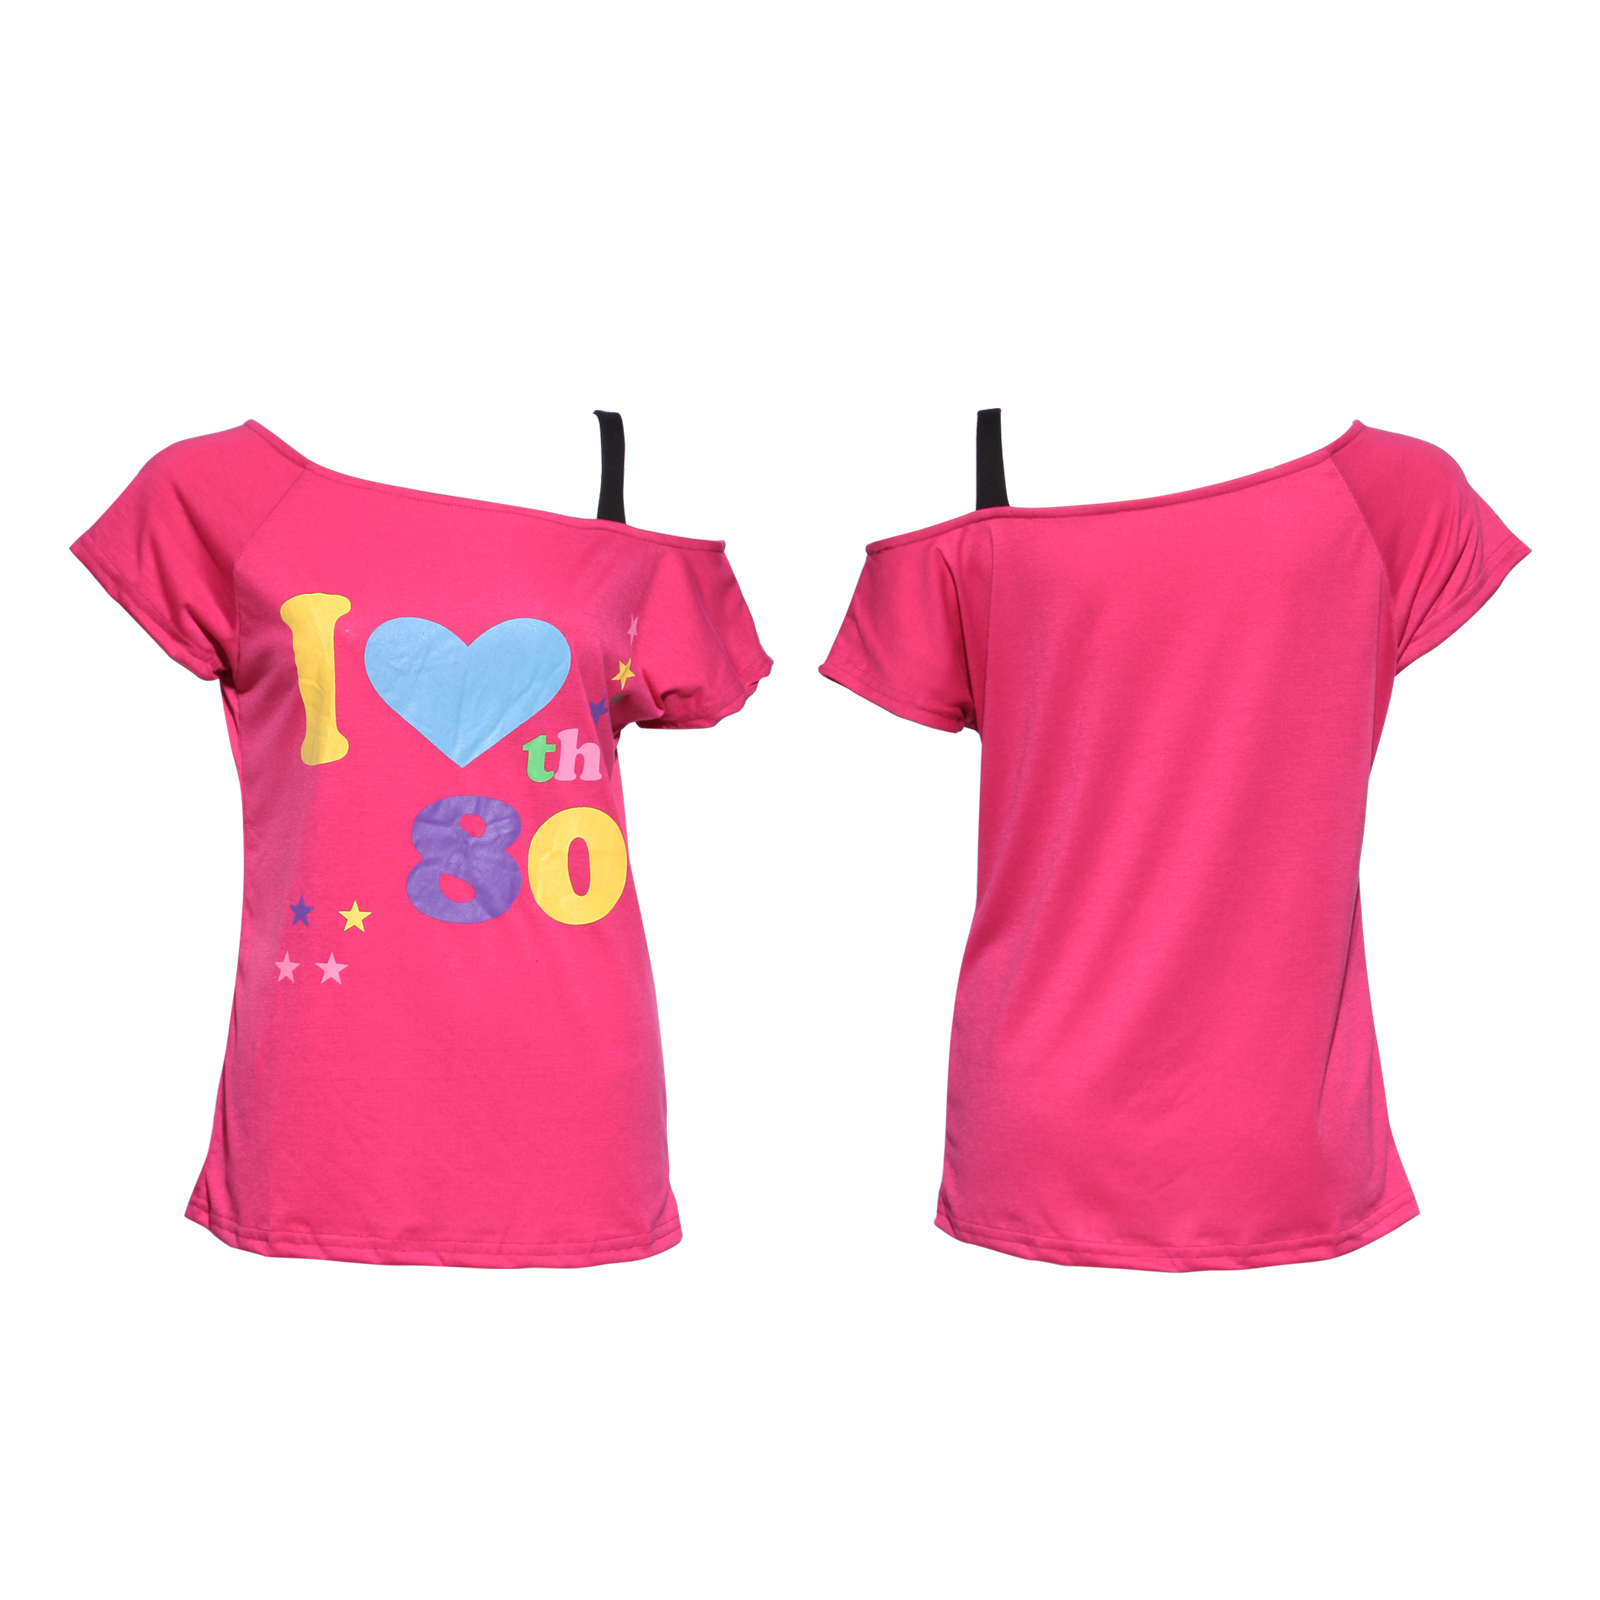 1980s pop star i love the 80s t shirt tee top costume pink. Black Bedroom Furniture Sets. Home Design Ideas